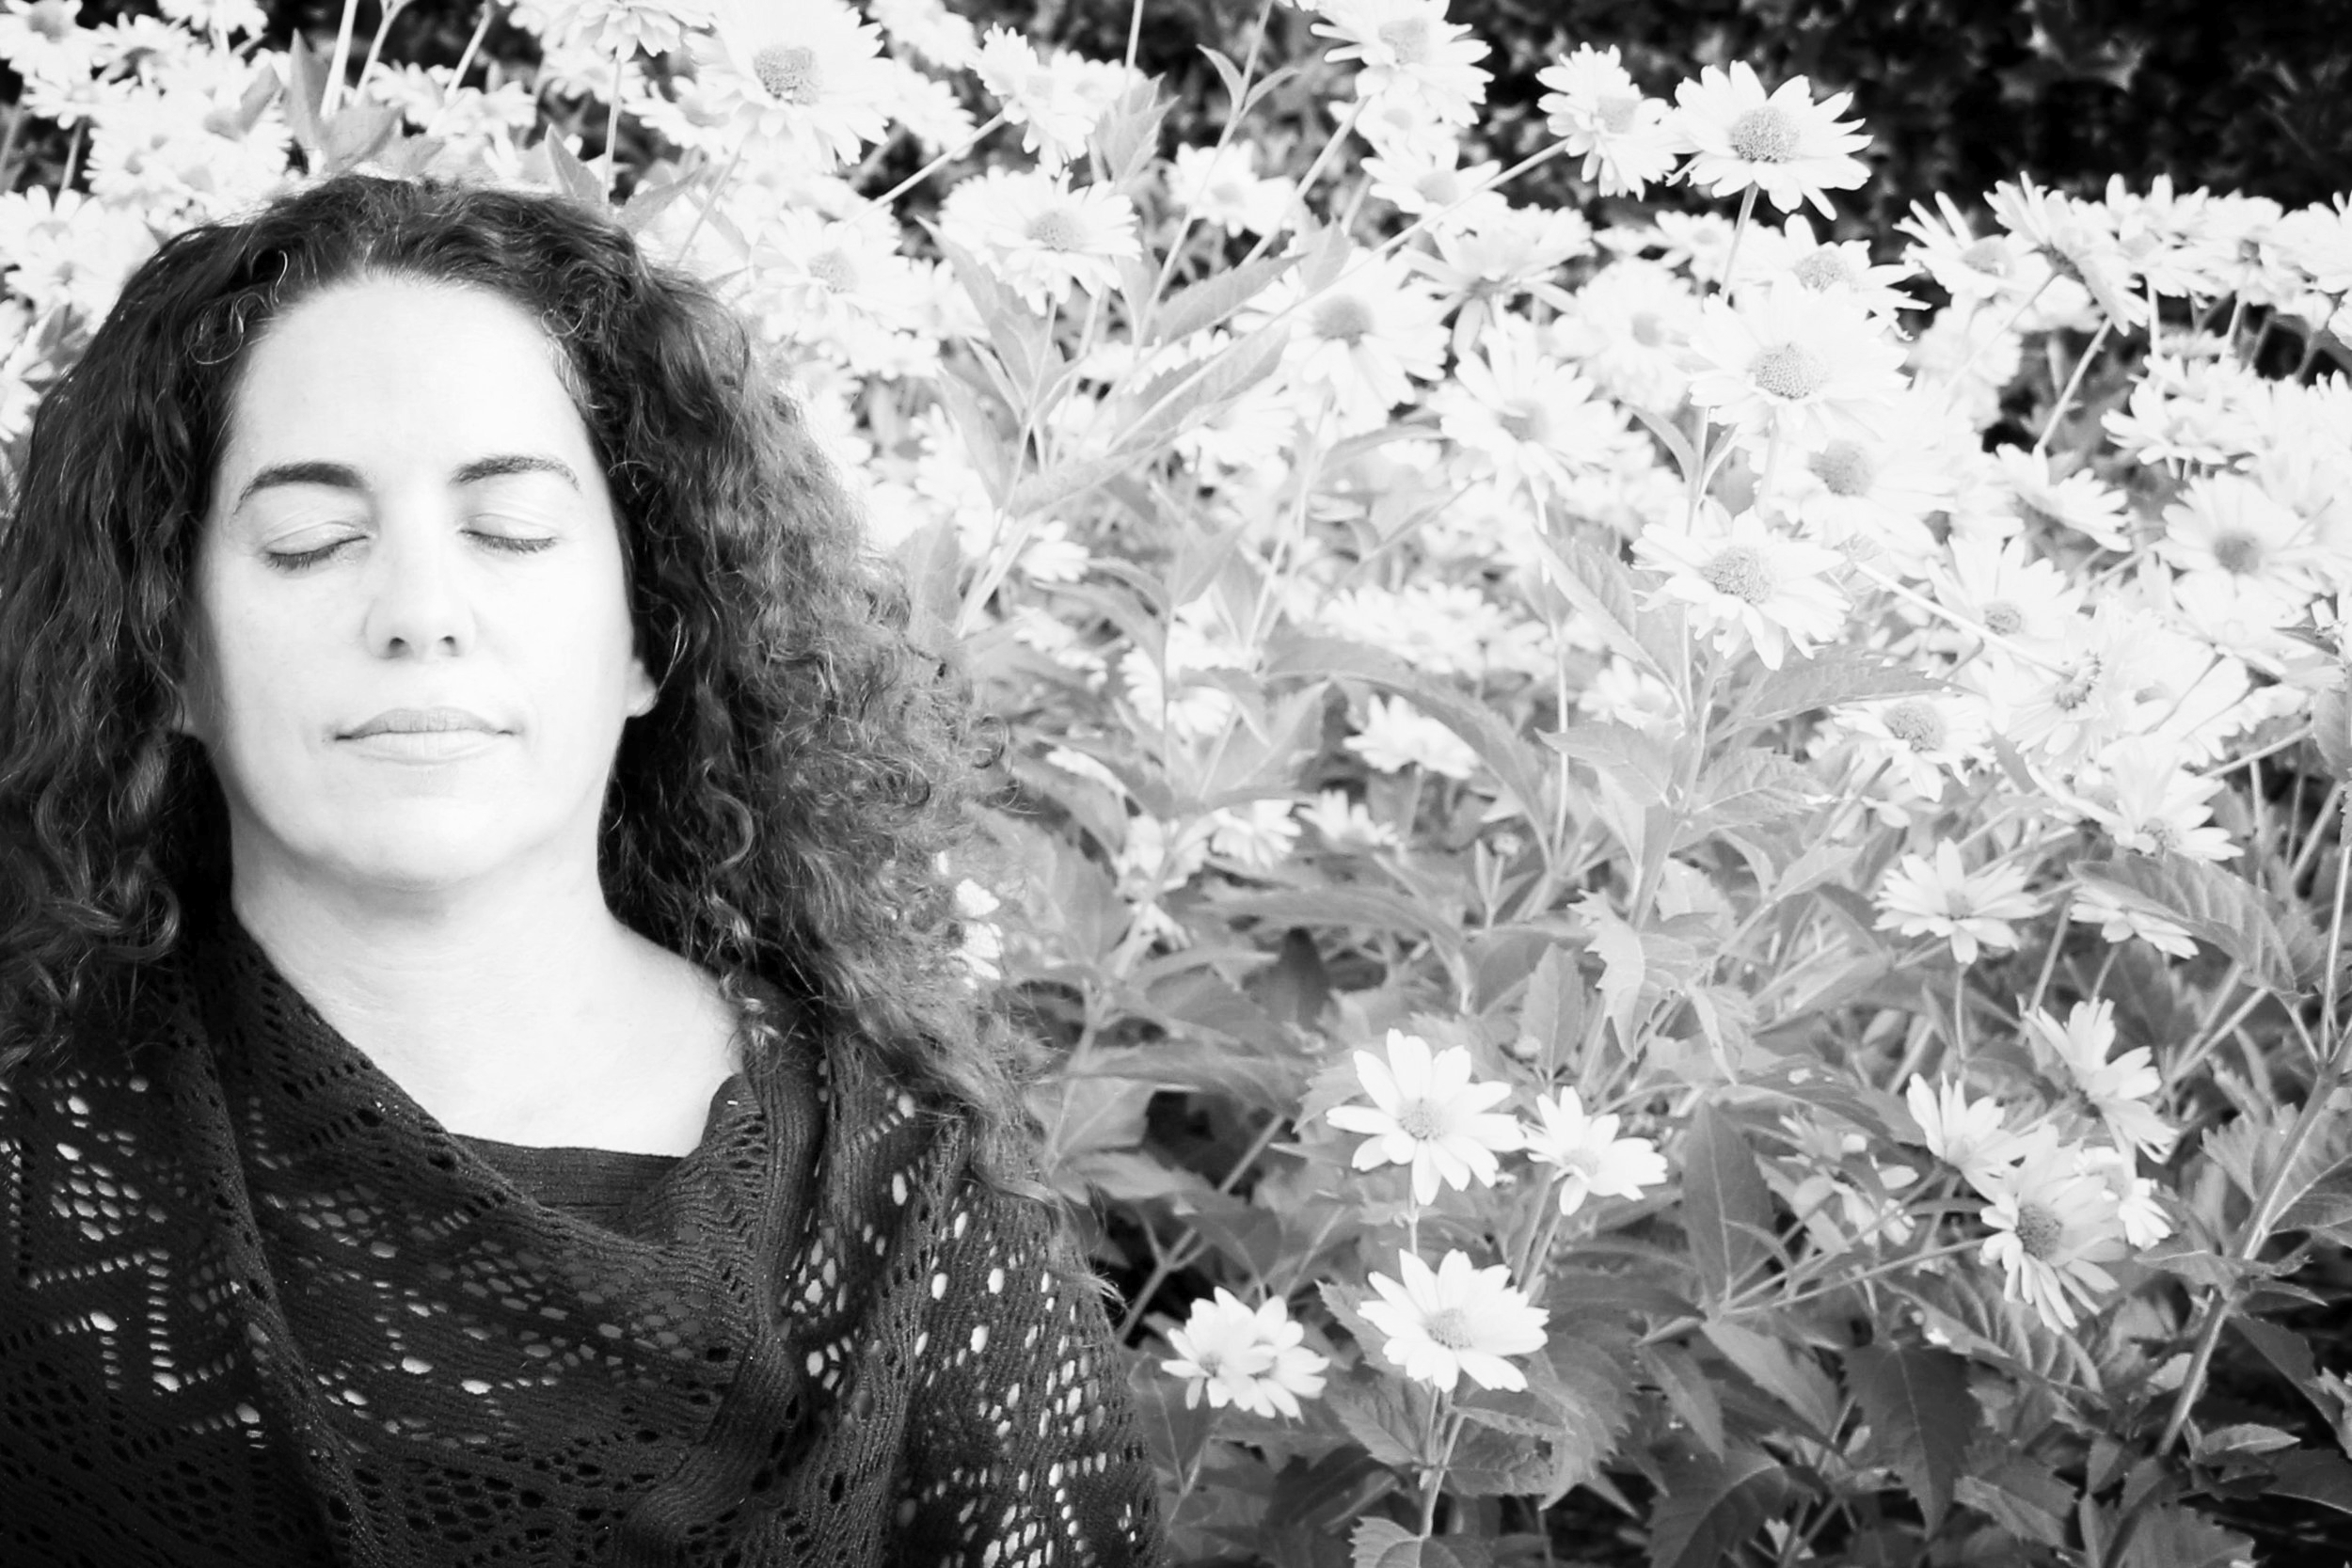 EVEN, FOCUSED BREATHING - Here we will work on steadying the breath and bringing energy into the mind. This practice can be done at any time of day, on it's own or as a great way begin any meditation or mantra practice.